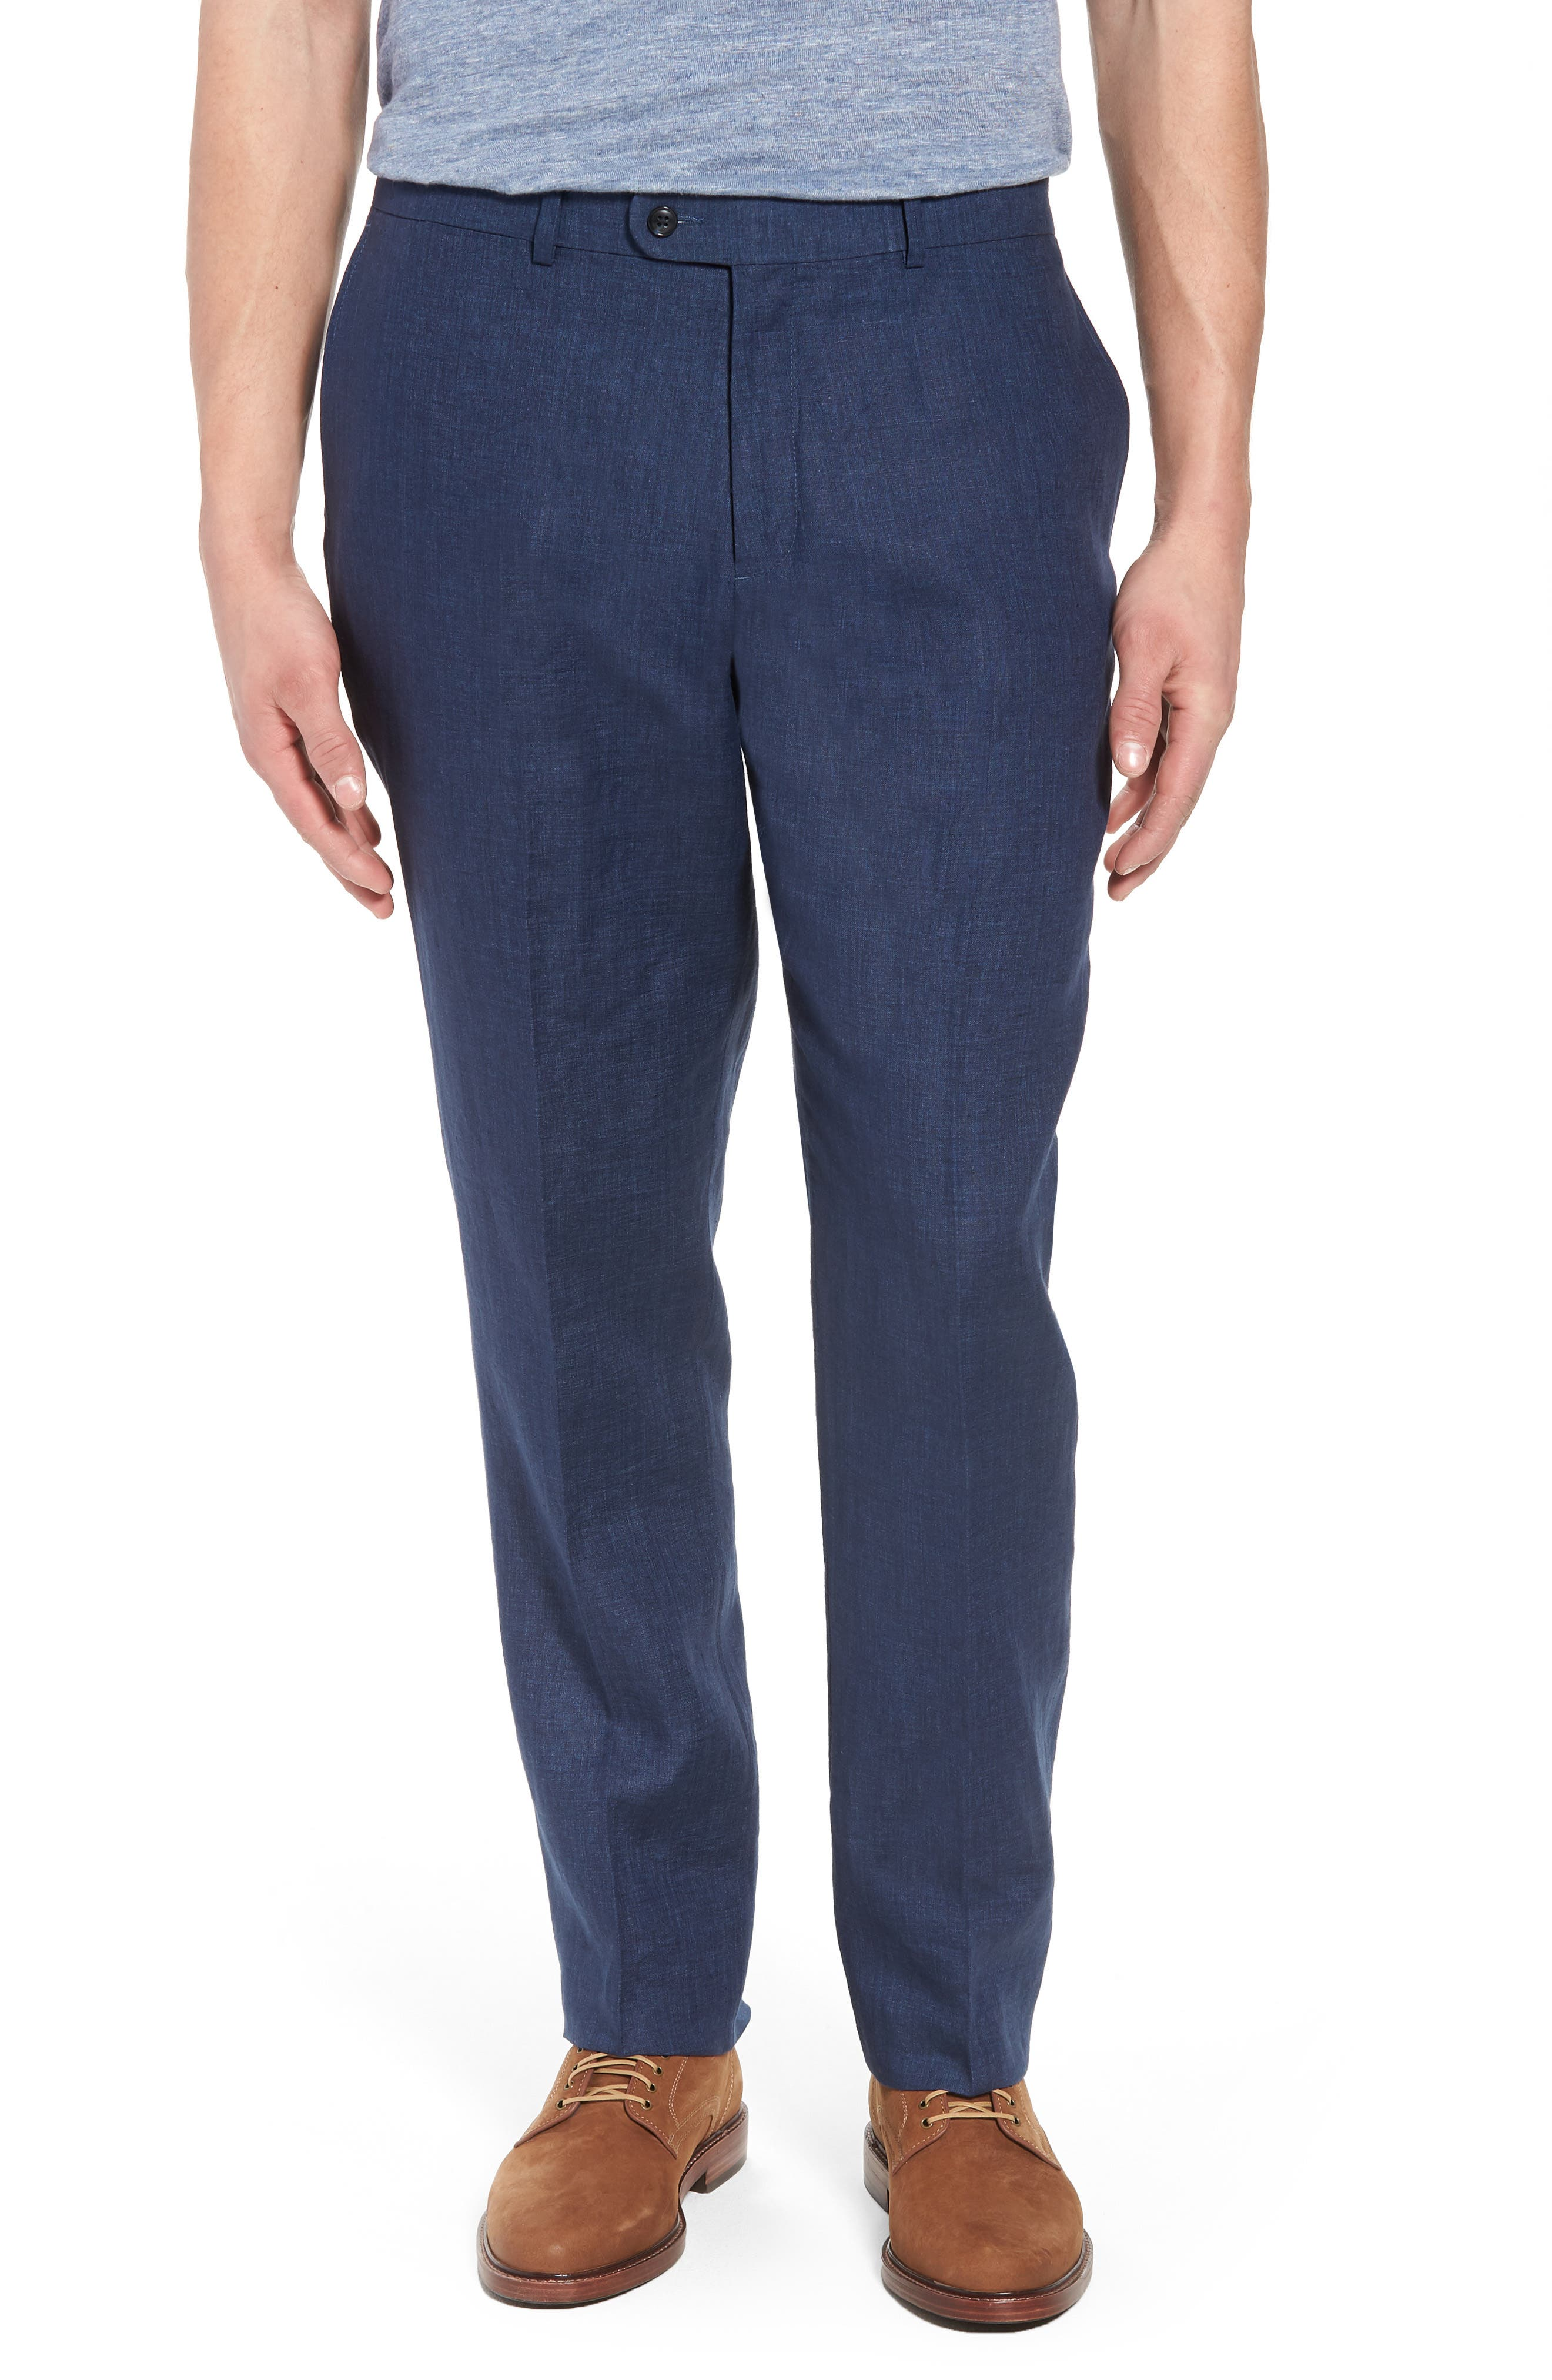 Andrew AIM Flat Front Linen Trousers,                             Main thumbnail 1, color,                             Navy